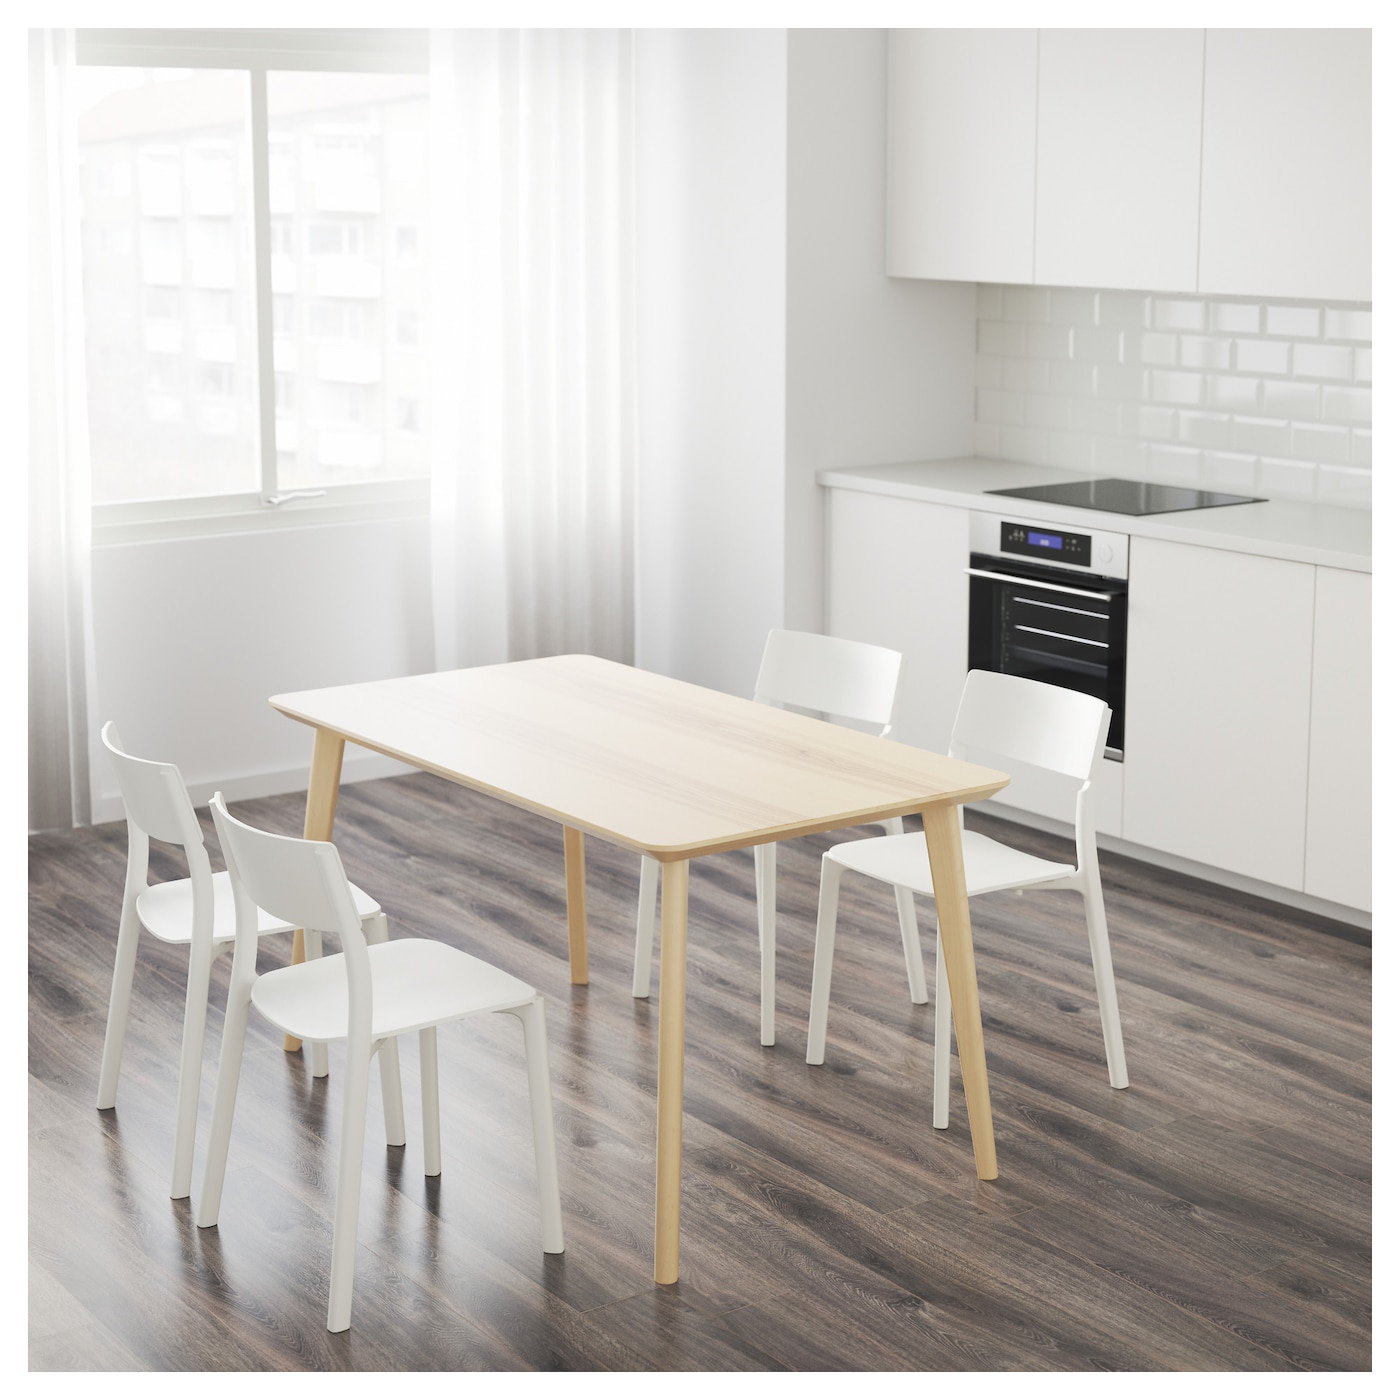 LISABO Table Ash veneer 140x78 cm IKEA